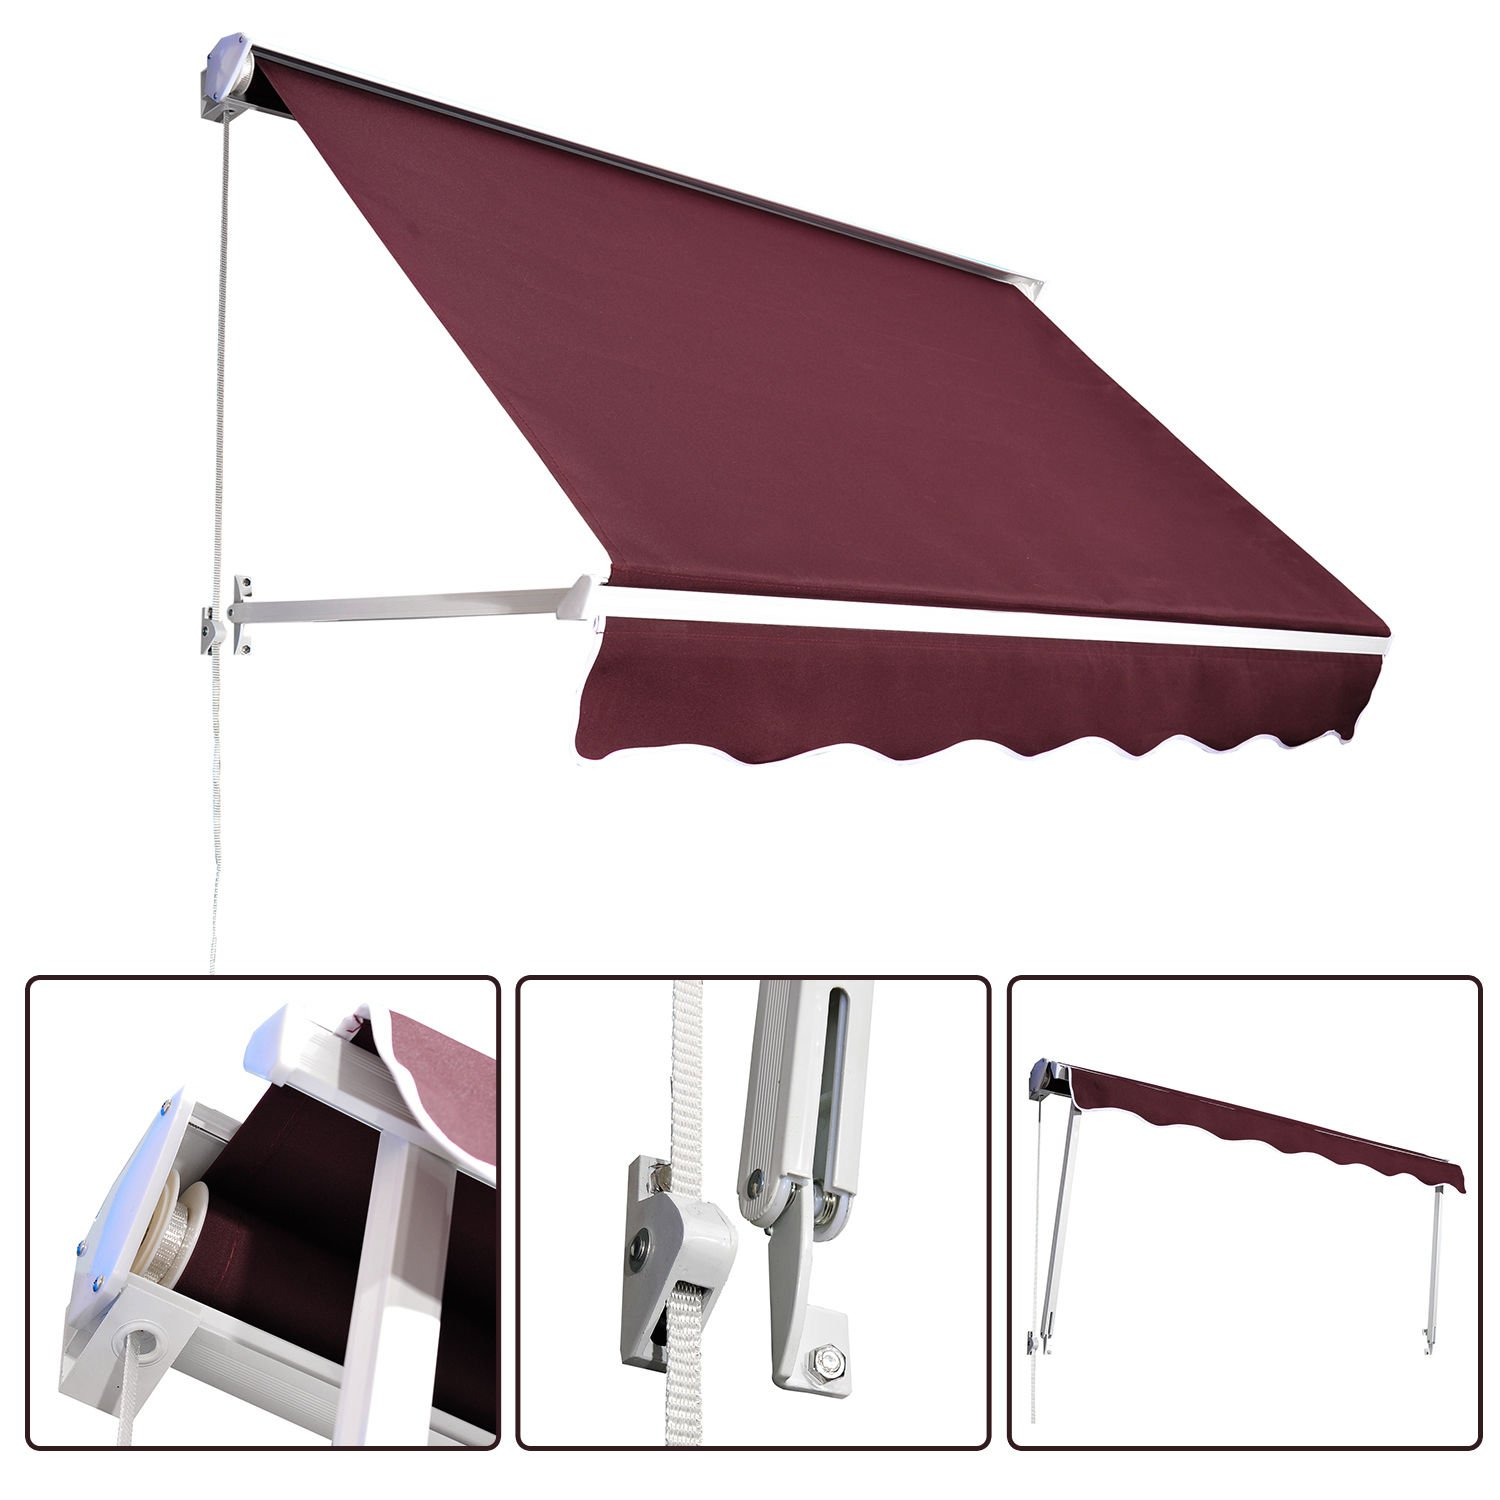 Green Outsunny 6'x2.3 Drop Arm Window Awning Manual Retractable ...